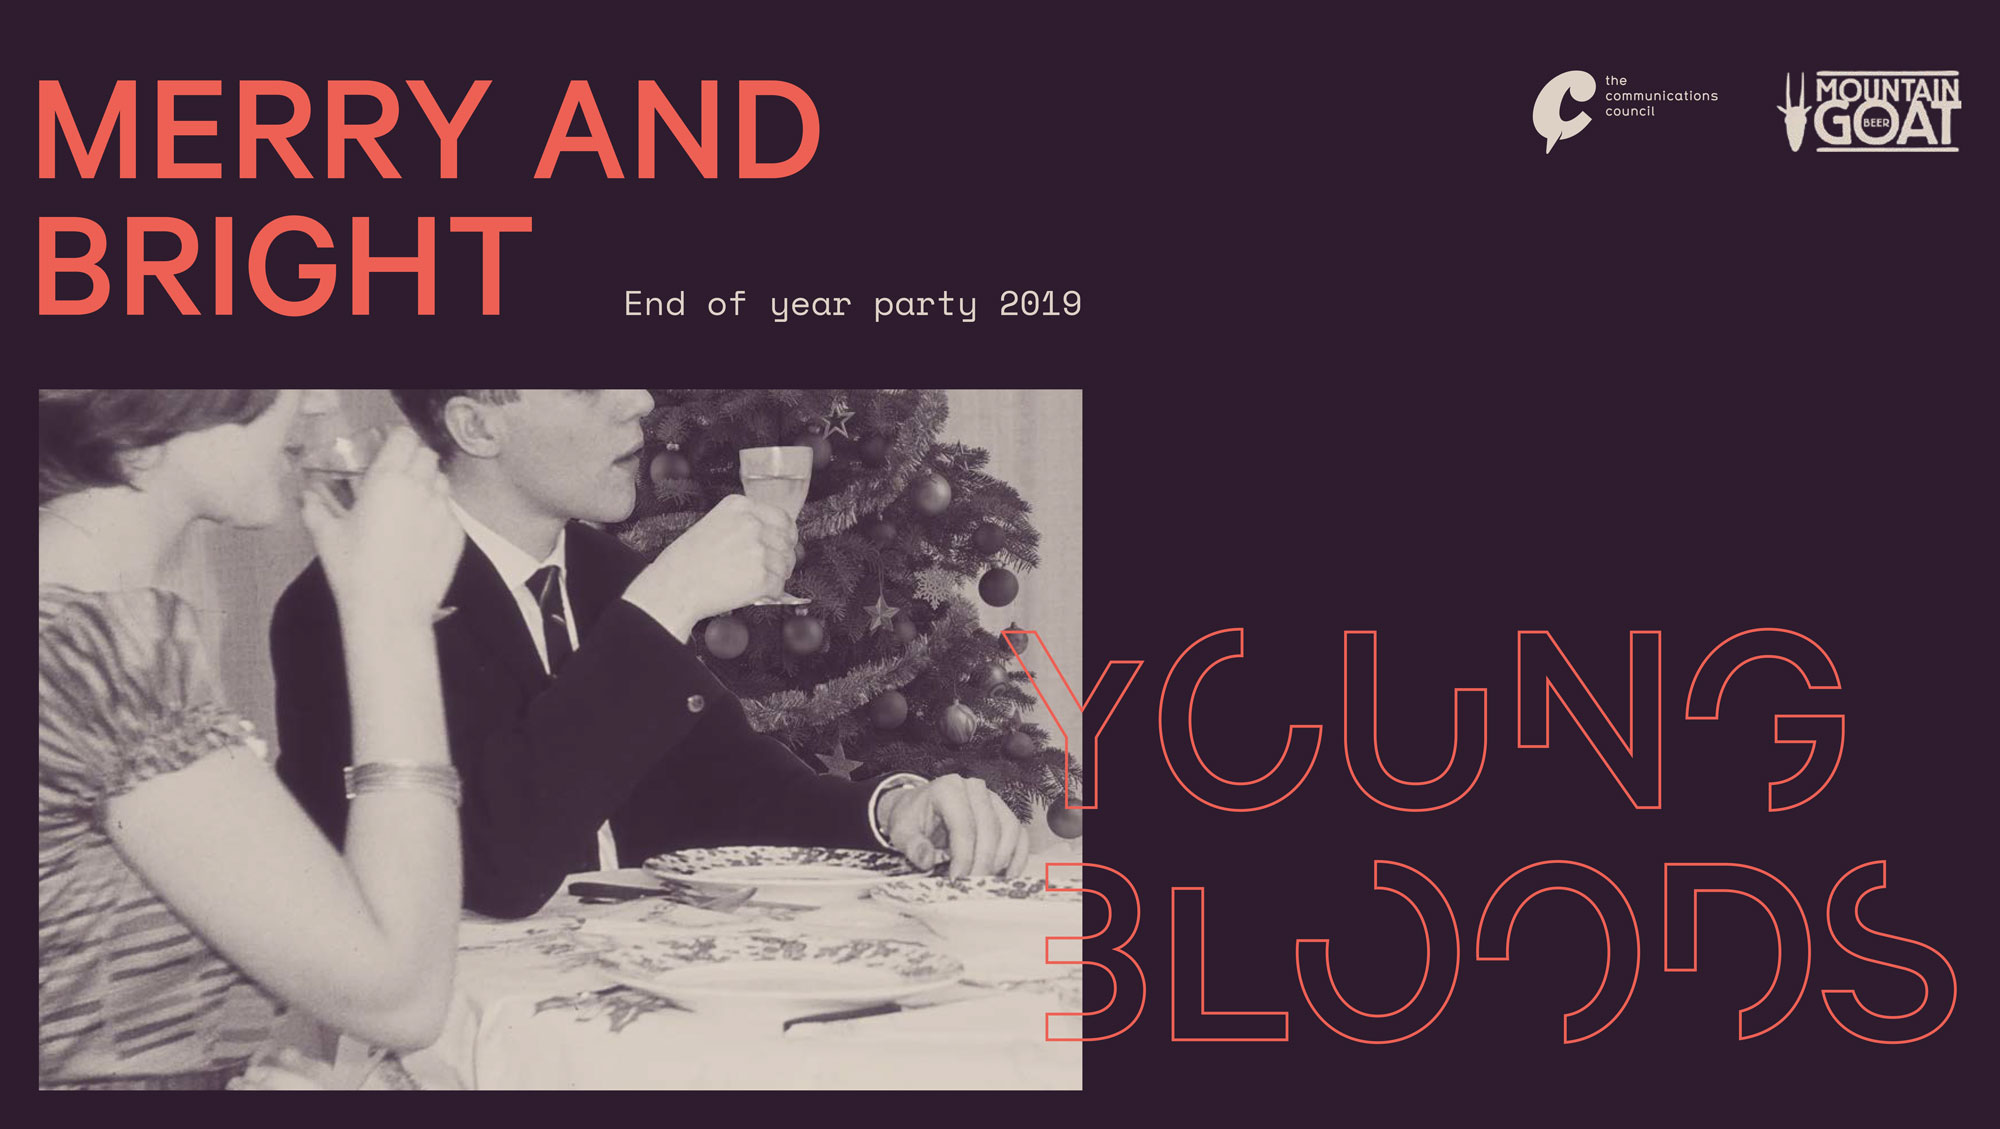 Youngbloods VIC to host 'Merry and Bright' end of year party at Mountain Goat Brewery in Richmond, next Thursday, 21 November